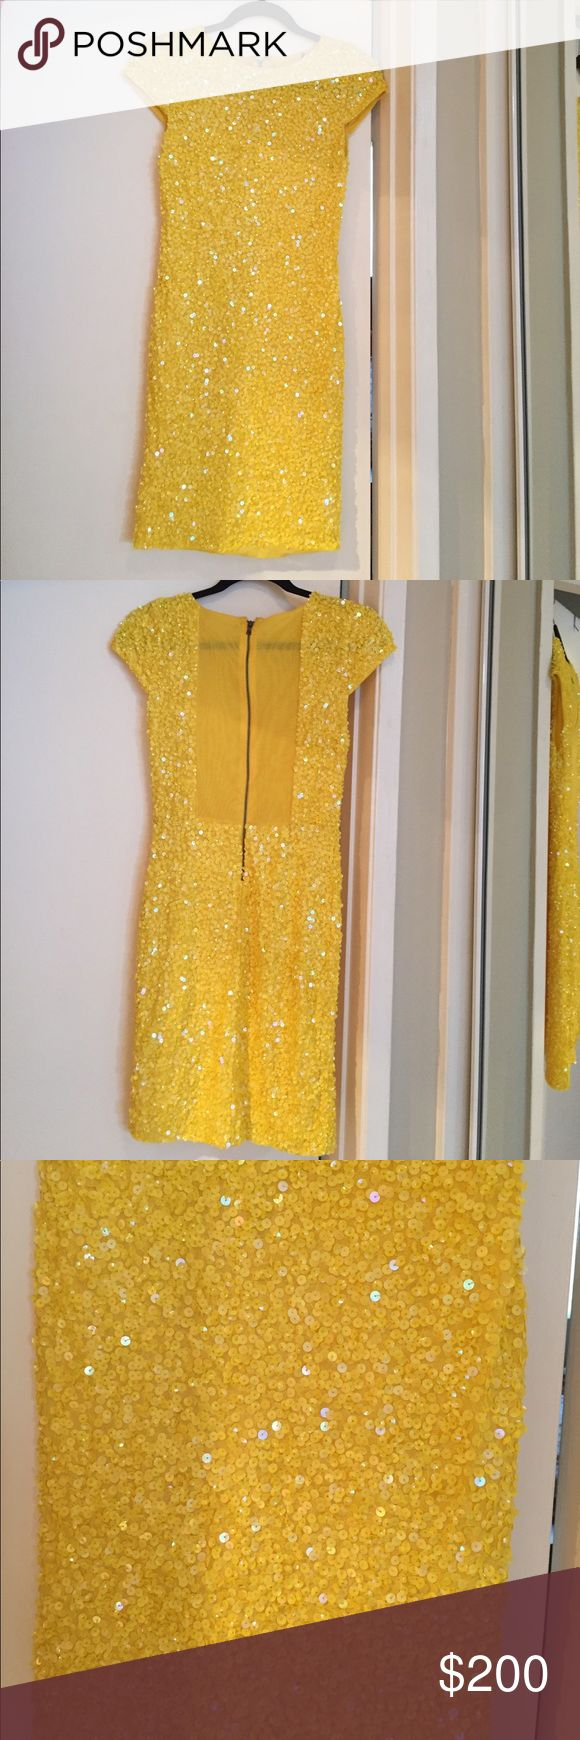 Alice and Olivia yellow sequin dress size xs Alice and Olivia yellow sequin midi dress, cap sleeves, zipper down back with semi sheer paneling, tag has been cut out but fits like an xs, I'm obsessed with this dress and so sad it doesn't fit. Looking for a med or large Alice + Olivia Dresses Midi